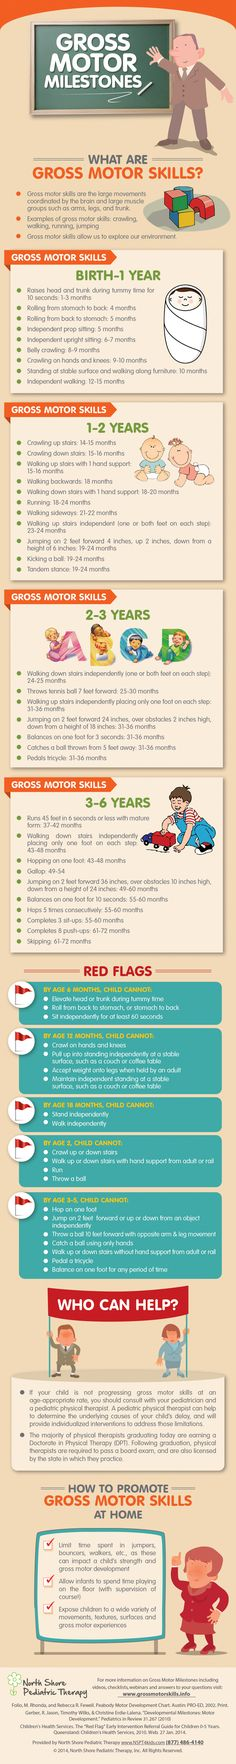 Nice infographic on gross motor skills. Visit www.yourtherapysource.com for gross motor activity ideas.